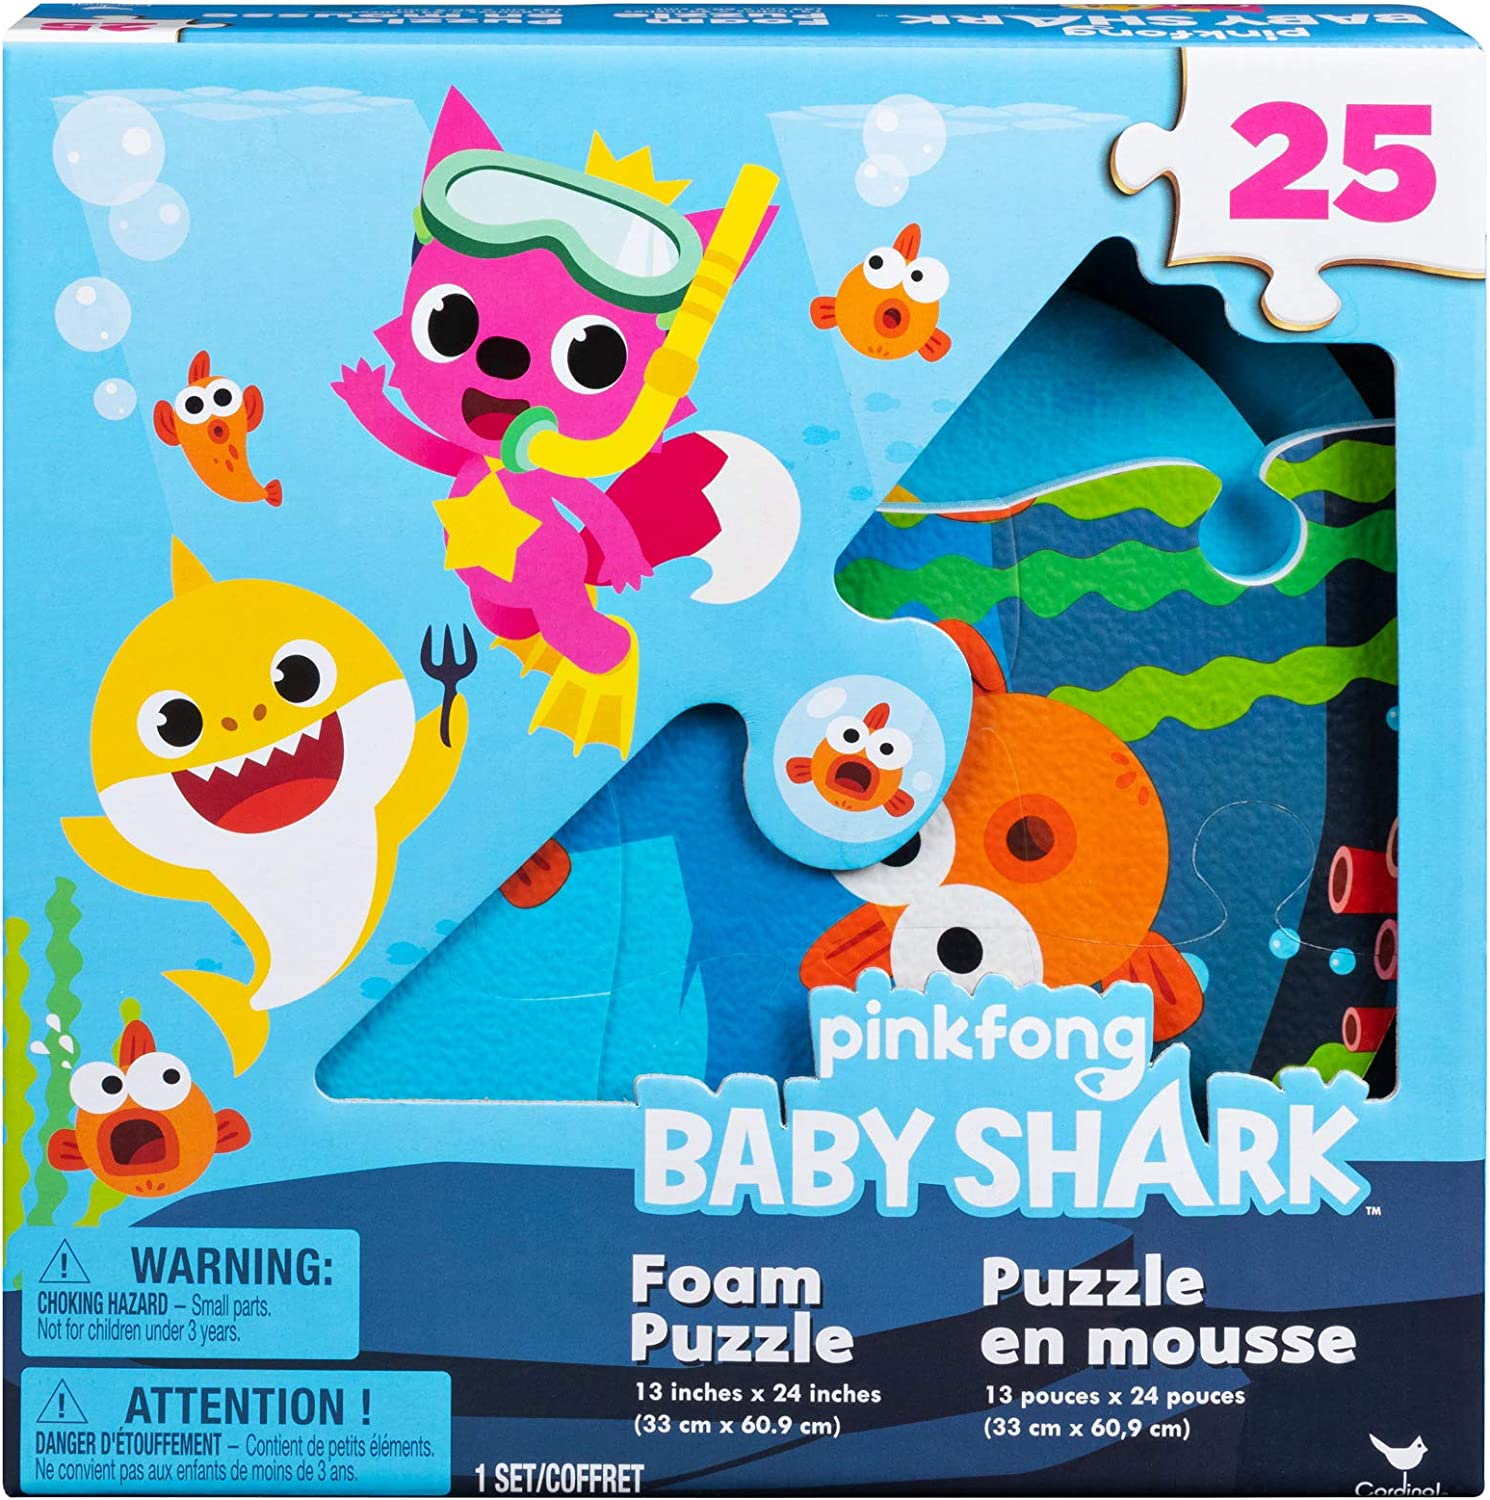 Pinkfong Baby Shark 25-Piece Foam Families Puzzle Jigsaw Directly managed store Ki for Indefinitely